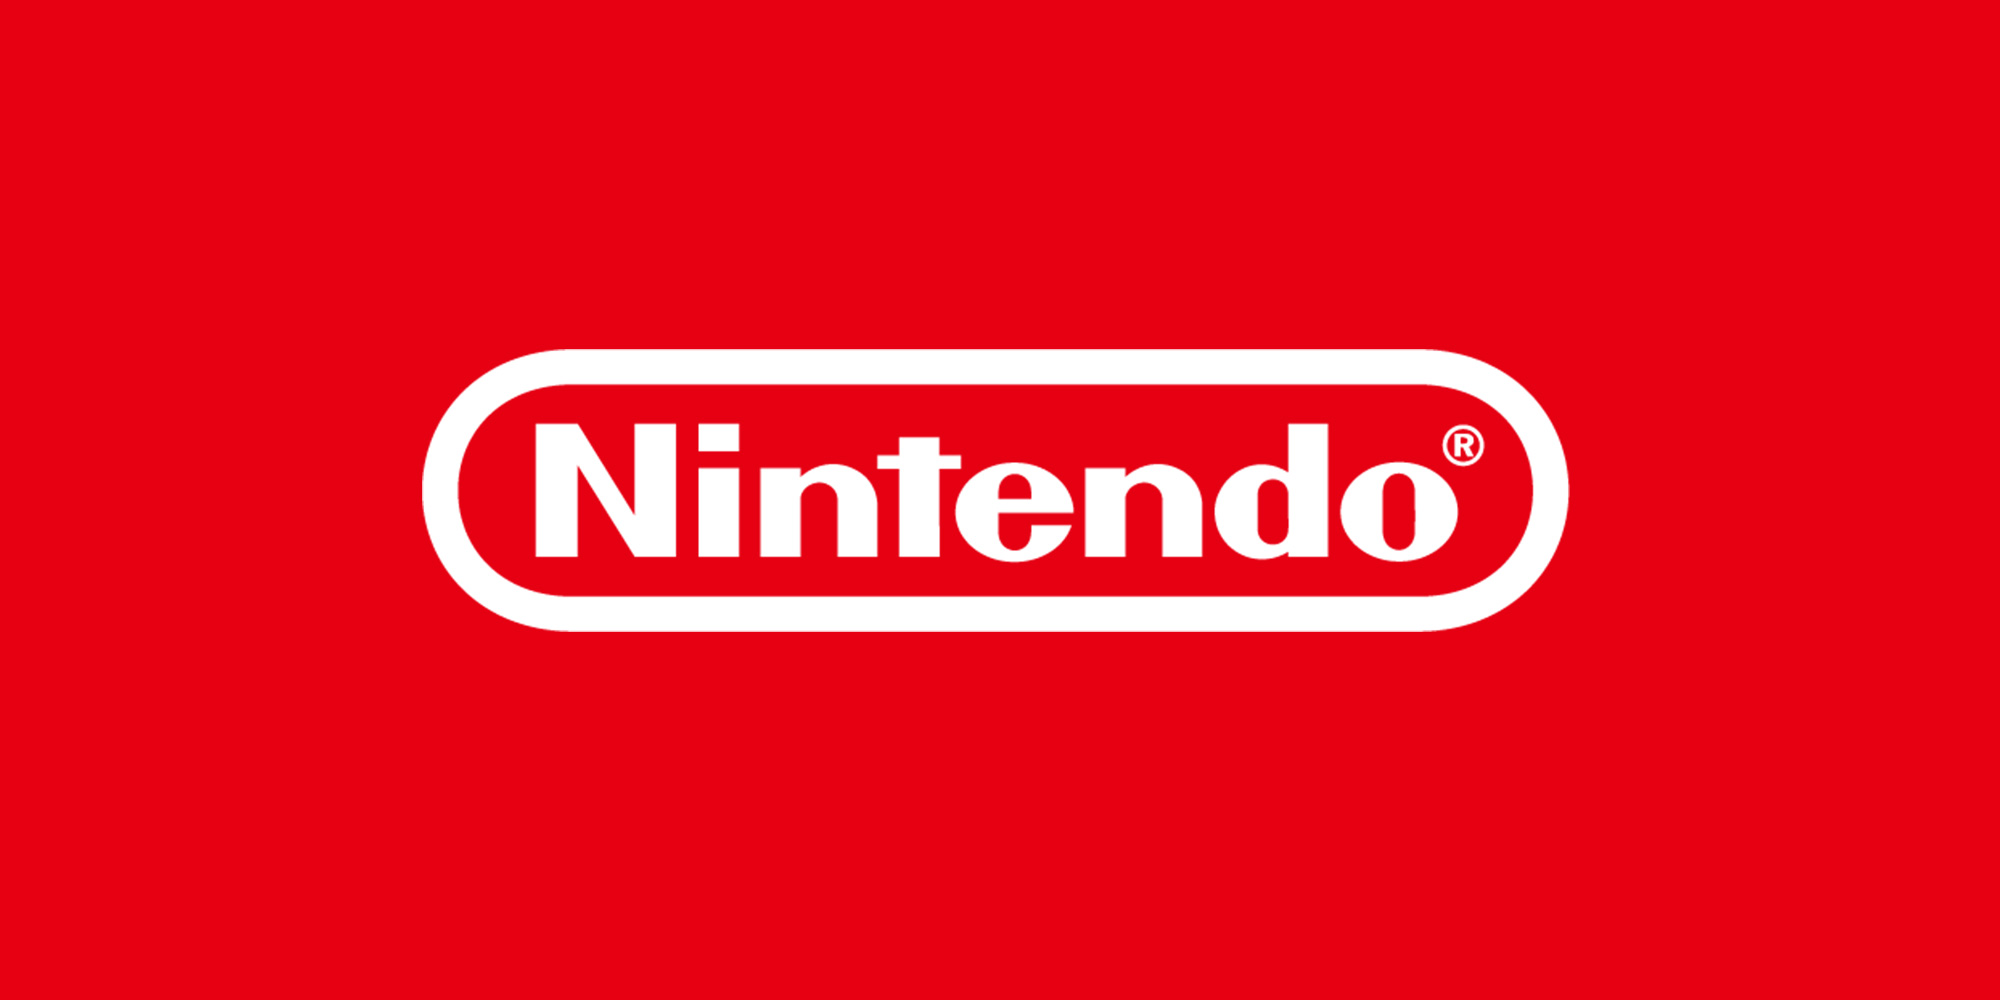 Where do I find legal games online for Nintendo's consoles and handheld systems?